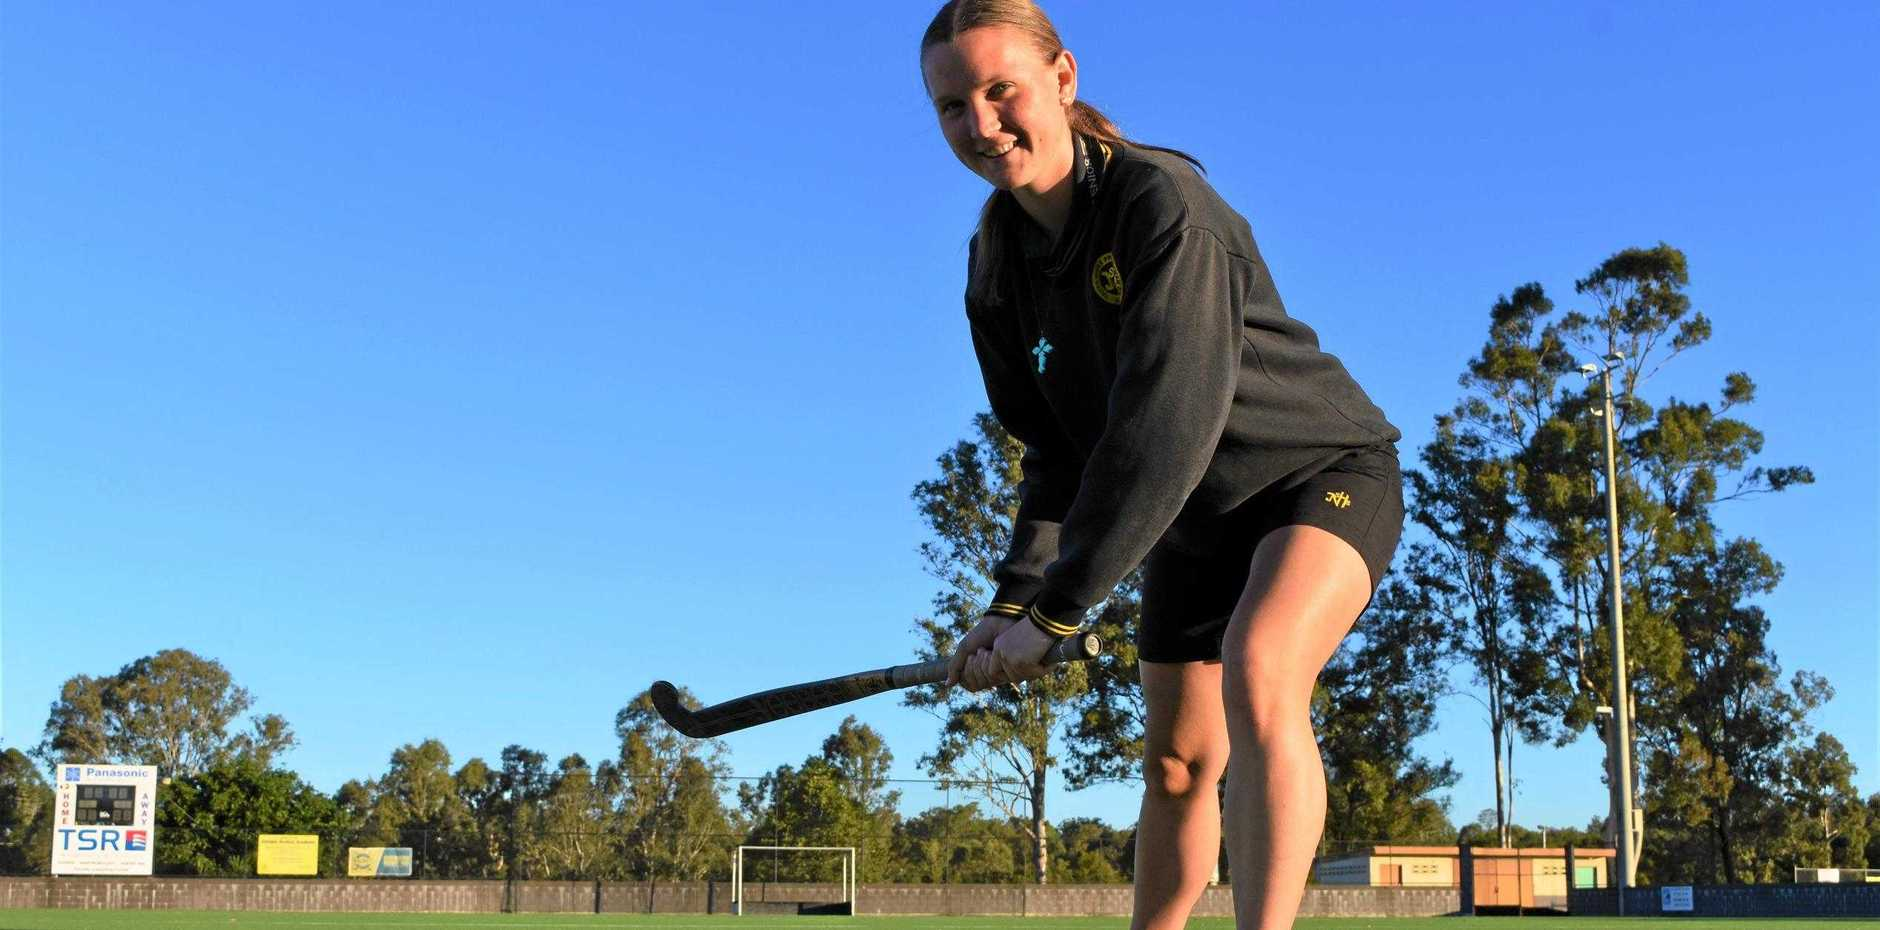 BIG DREAM: Gympie athlete Jess Wilcox's  goal  is to play for her state.